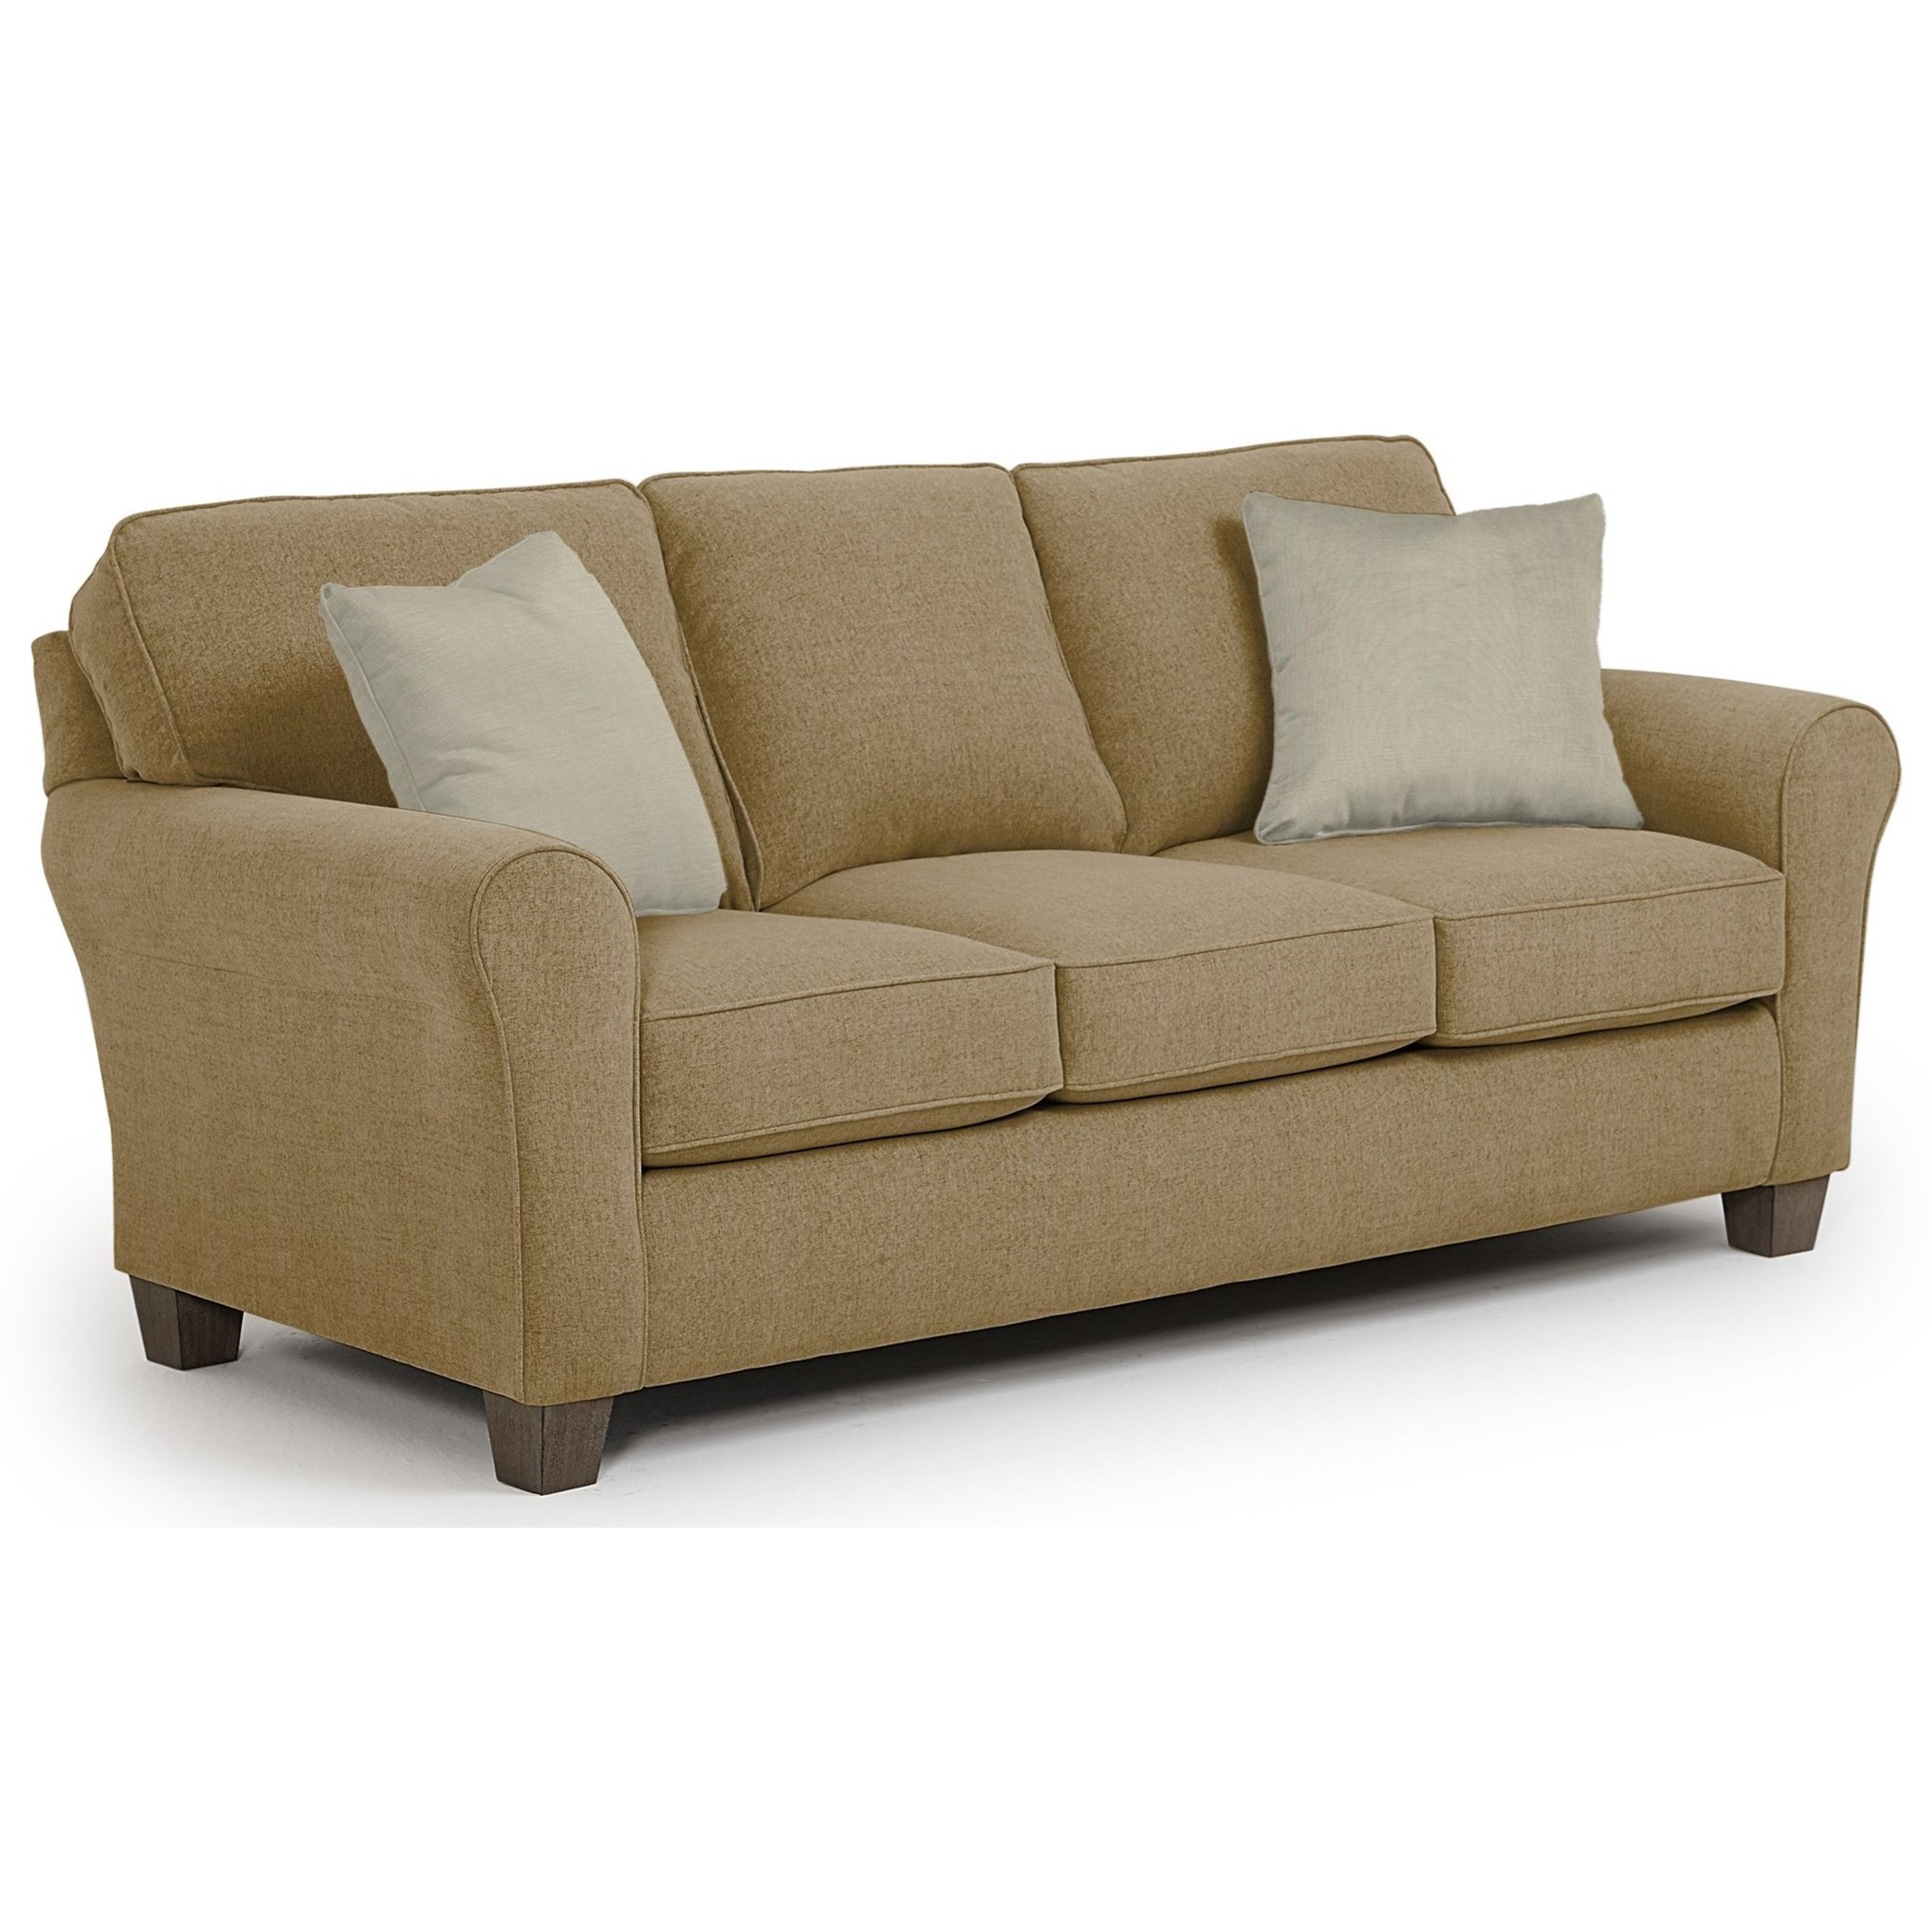 Annabel  Custom 3 Over 3 Sofa by Best Home Furnishings at EFO Furniture Outlet